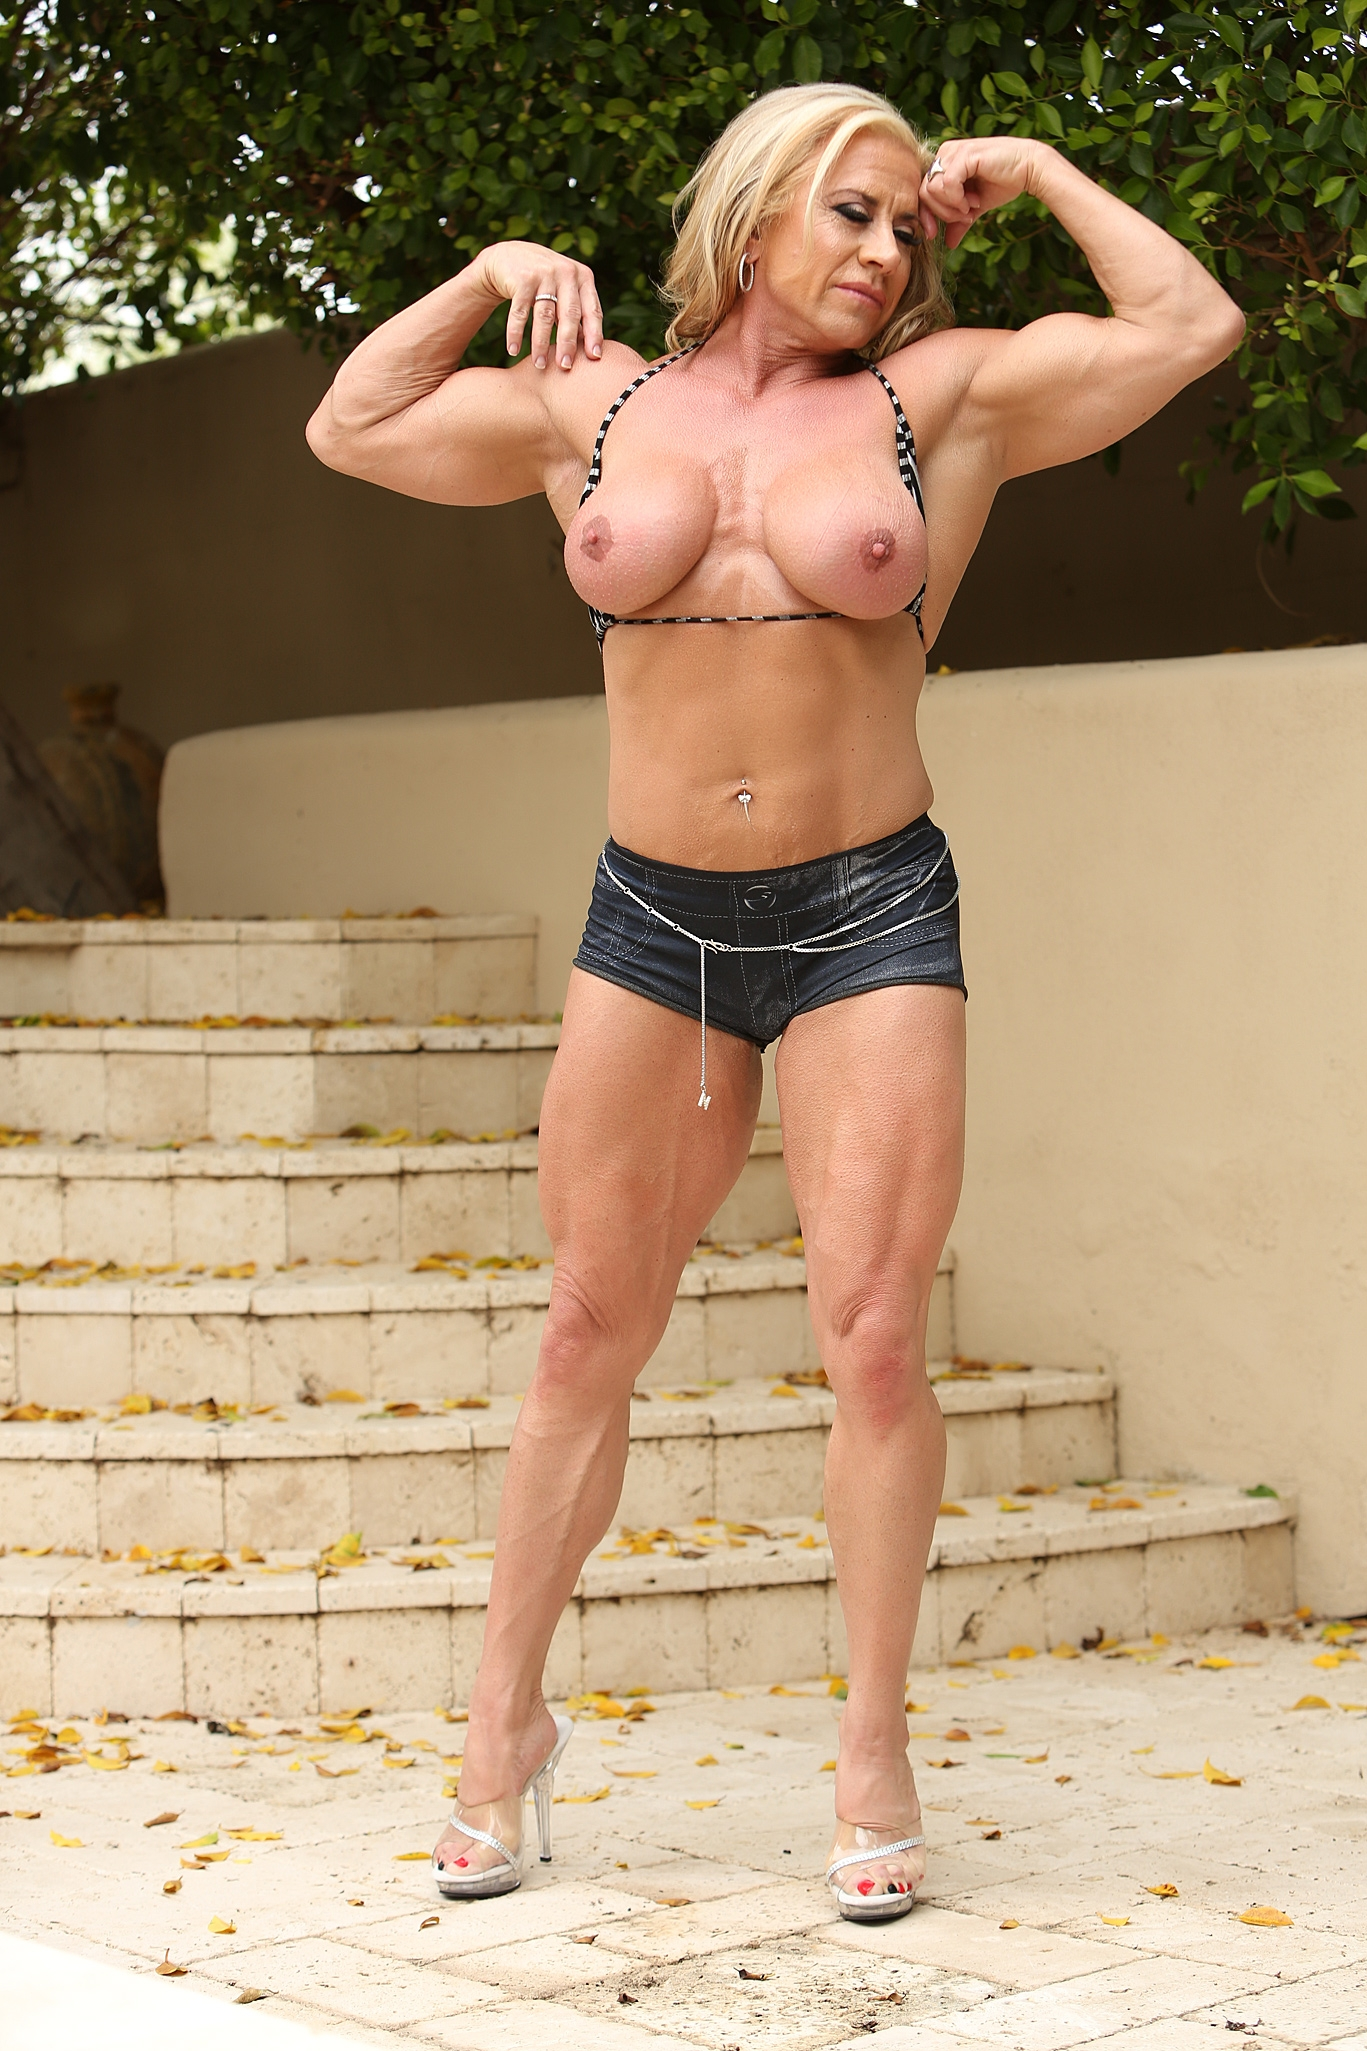 Please, Wanda moore bodybuilder nude pussy with you